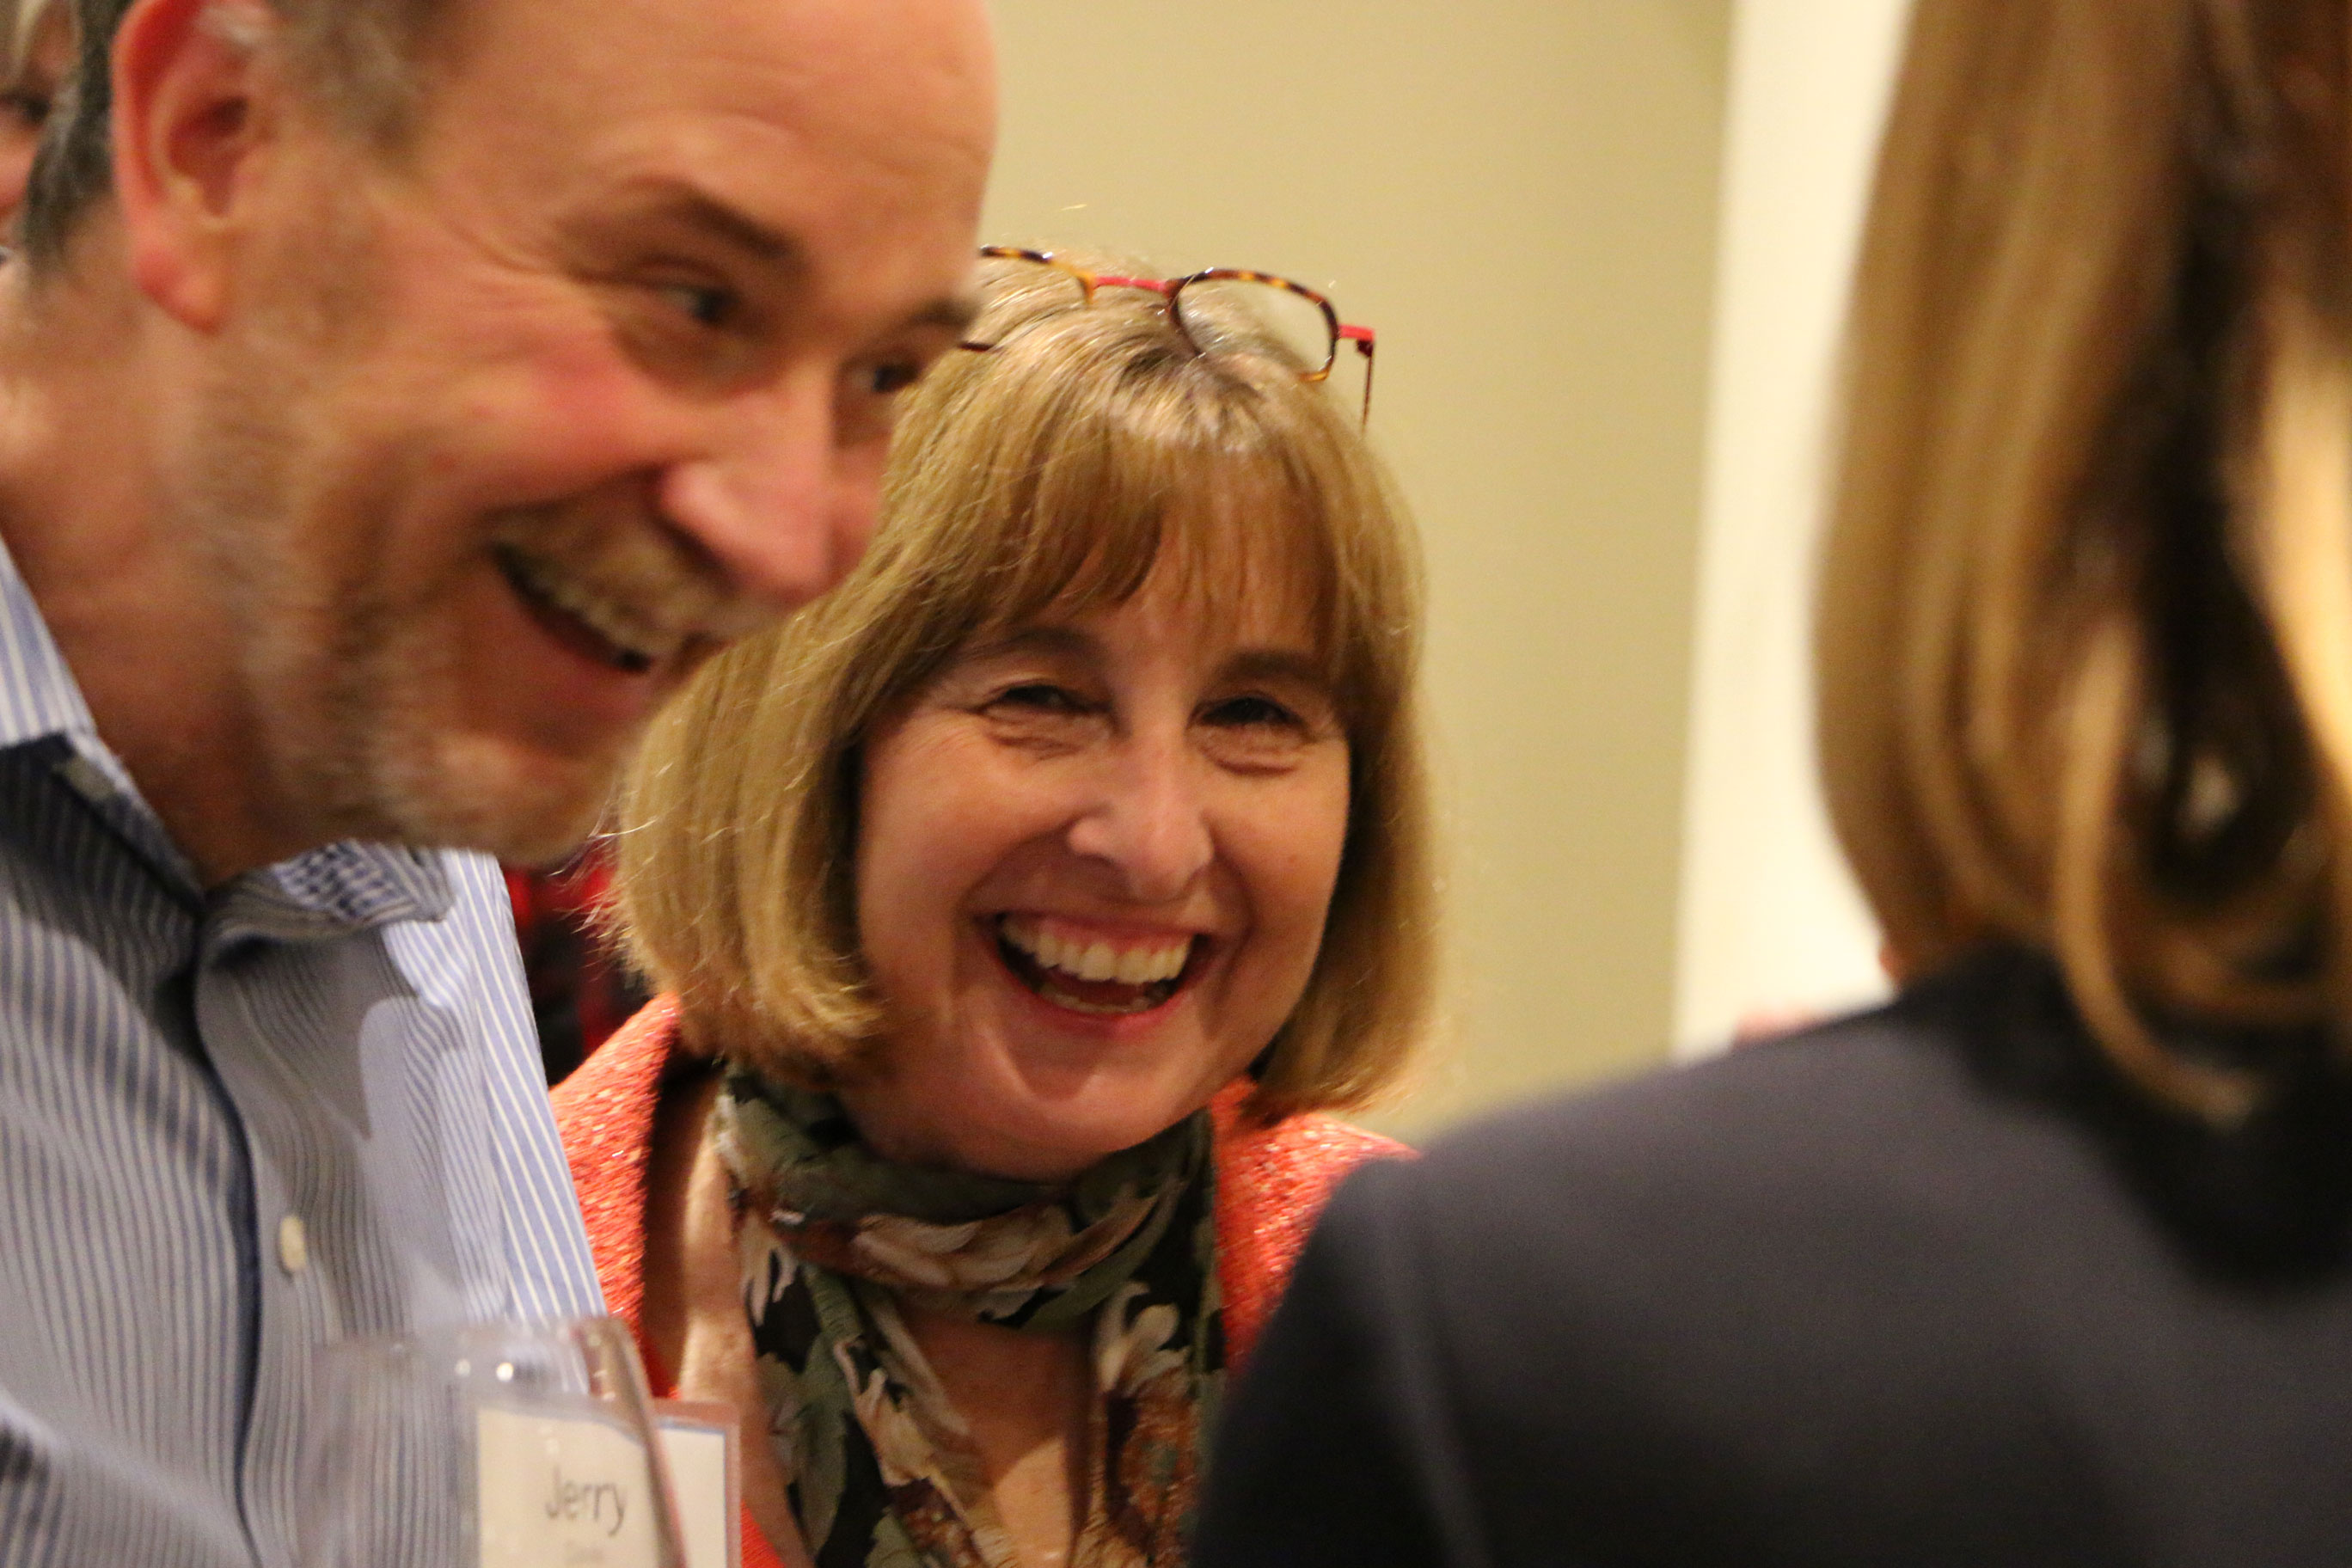 Having a laugh with Keynote Speaker Jerry Davis